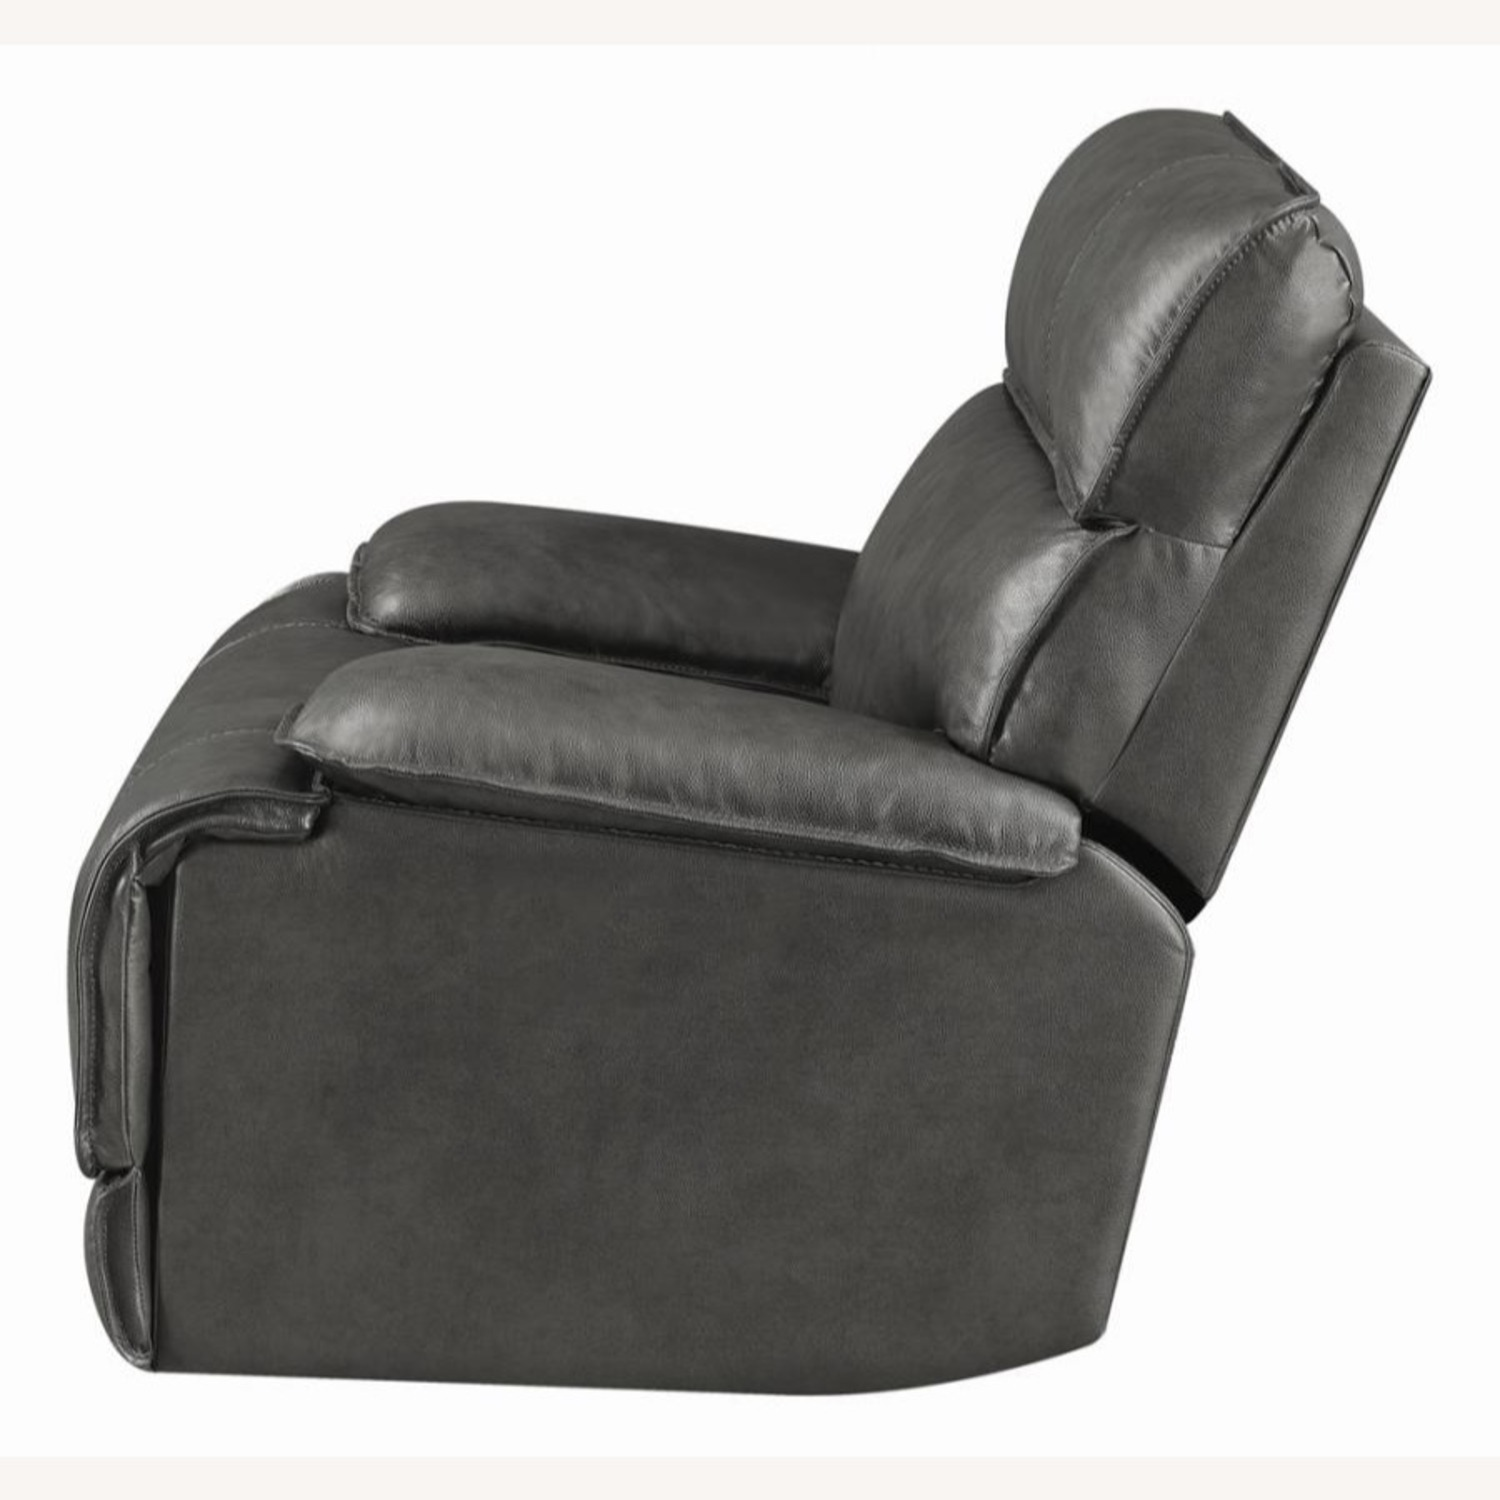 Power Glider Recliner In Charcoal Leather - image-3